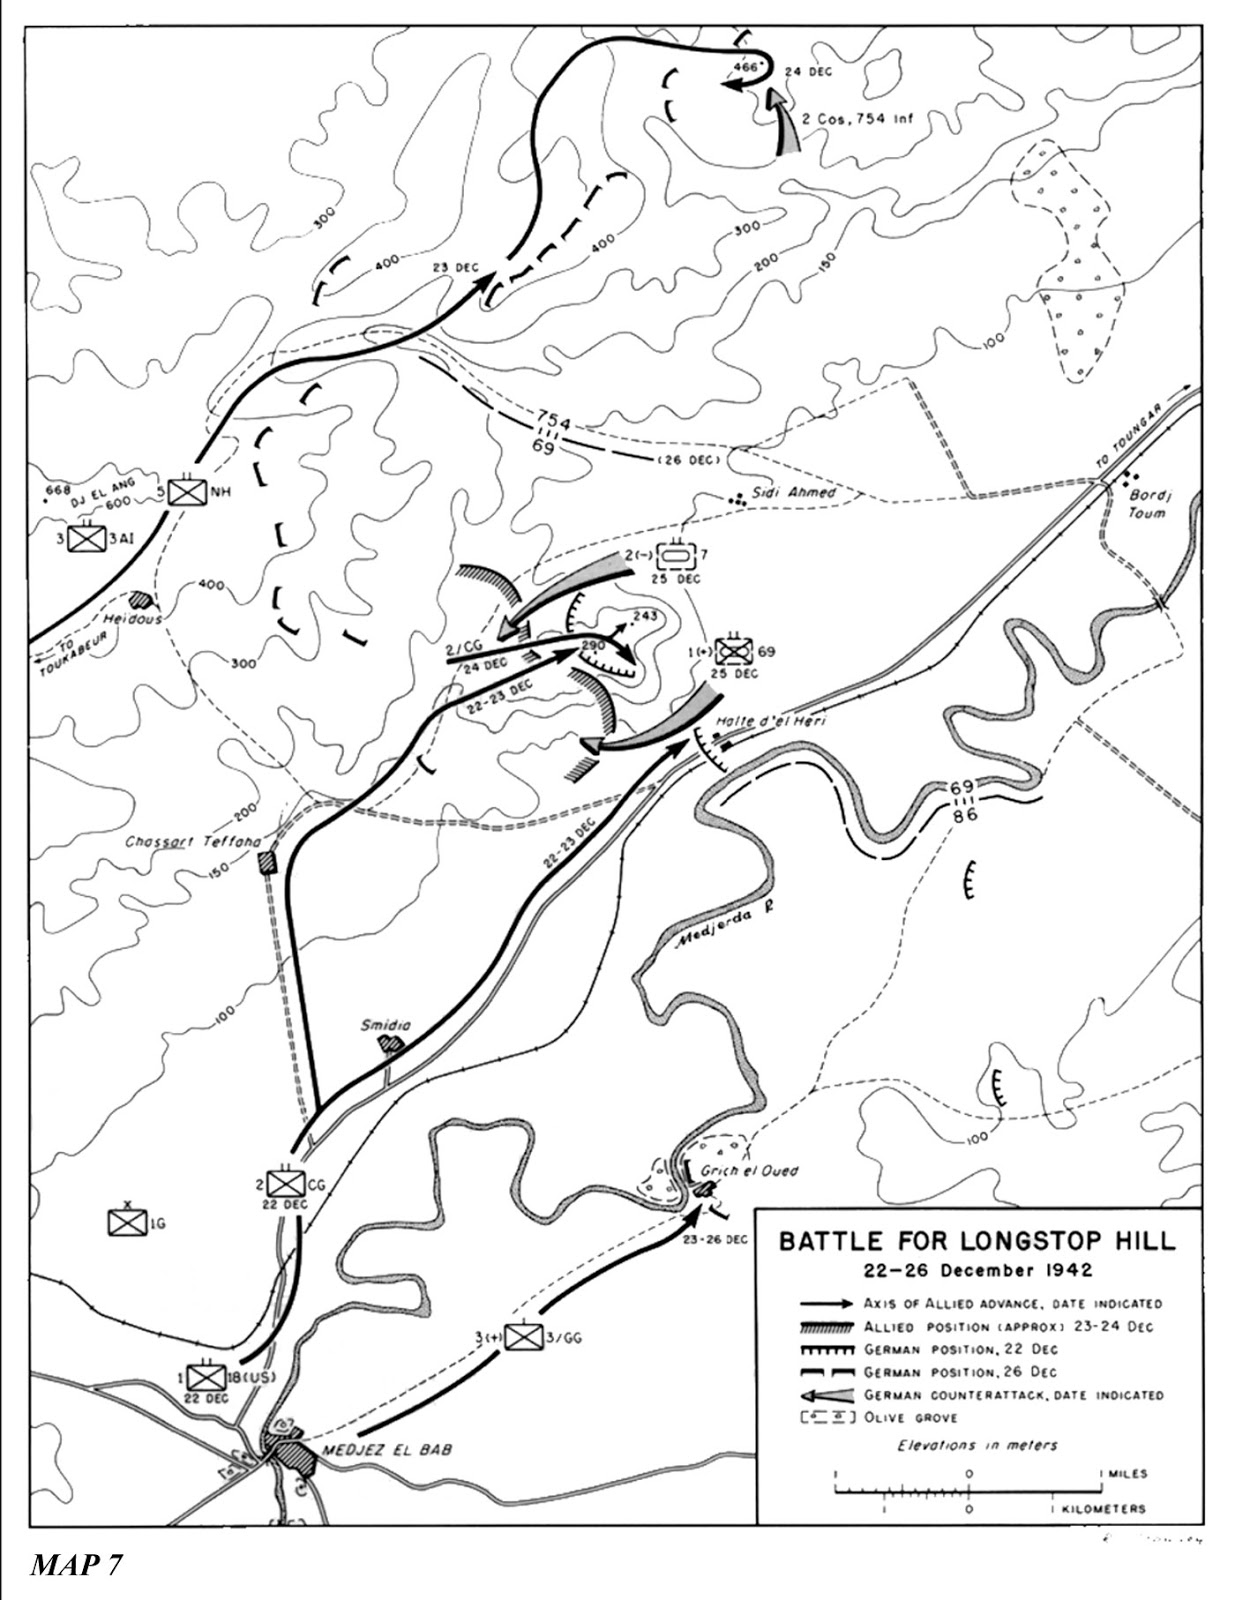 The Battle for Longstop Hill showing the area for our battle around Sidi Ahmed to the north east